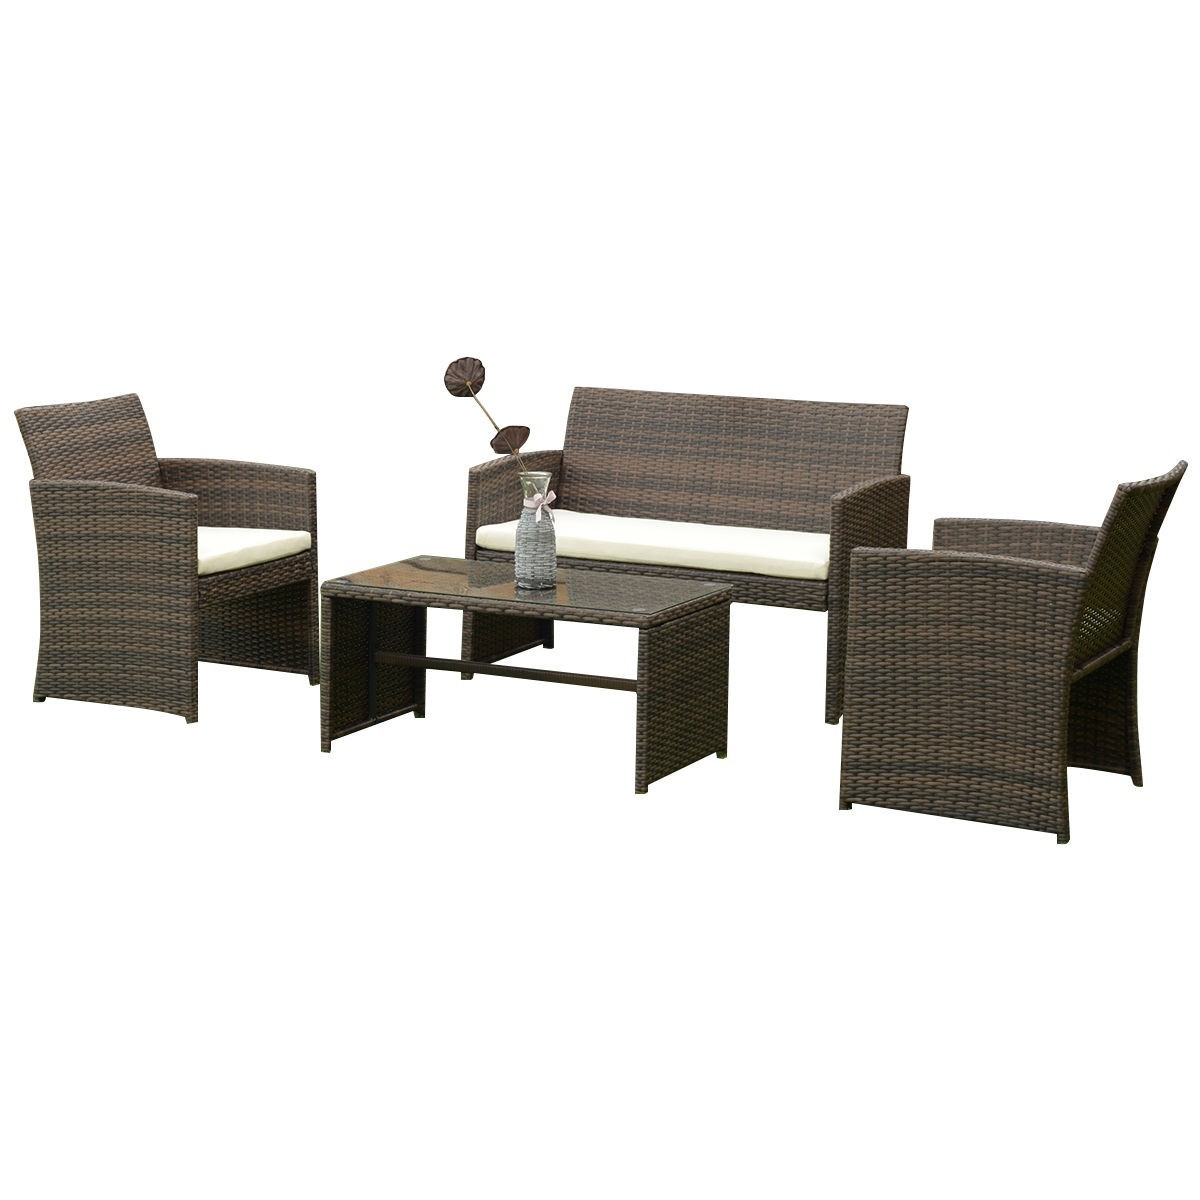 4 pcs Patio Rattan Wicker Furniture Set by